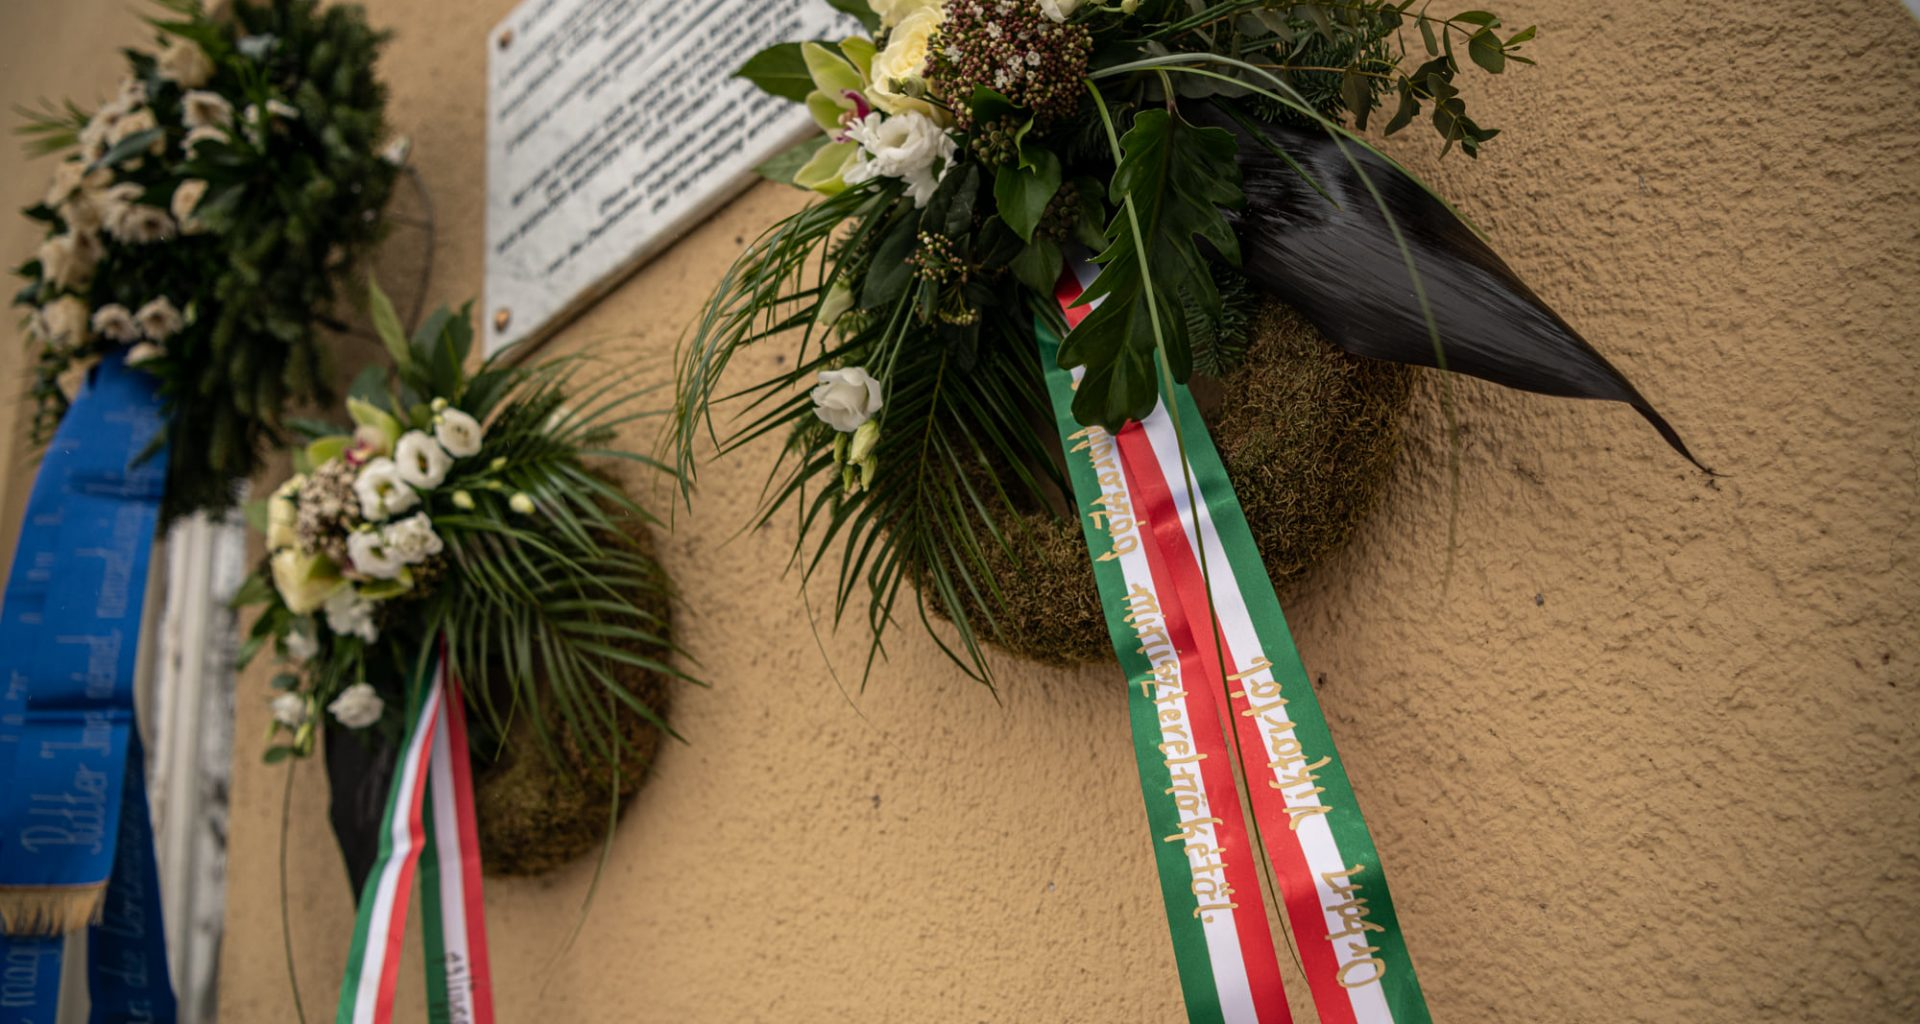 this day an official state day of remembrance of the deportation and expulsion of ethnic Germans